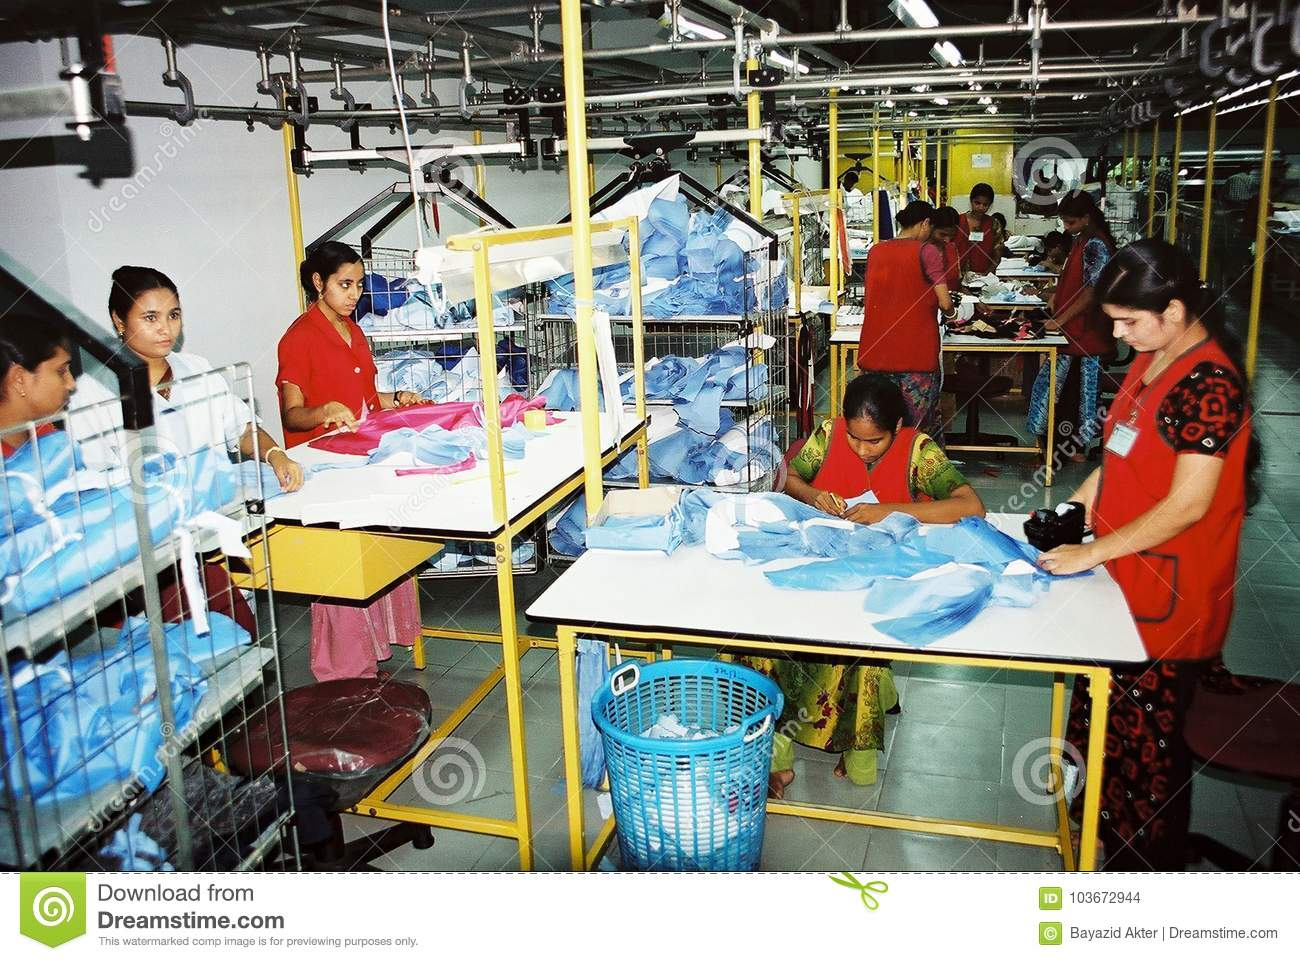 Industrie de vêtements au Bangladesh